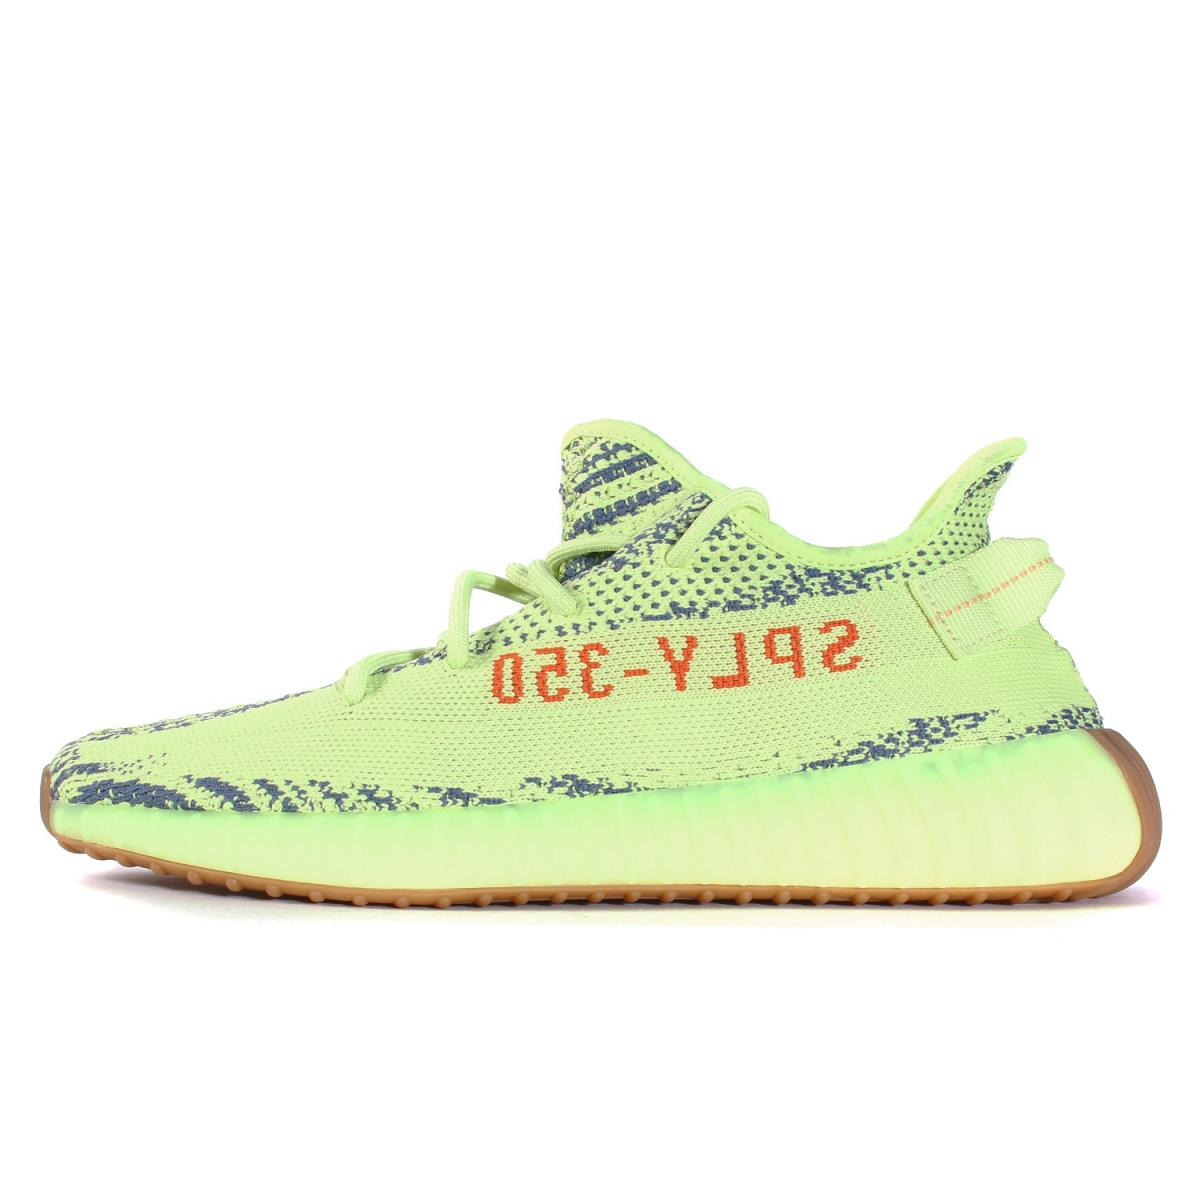 sports shoes 686b0 4f549 adidas (Adidas) 18A/W YEEZY BOOST 350 V2 SEMI FROZEN YELLOW(B37572) cicada  frozen yellow US10(28cm)